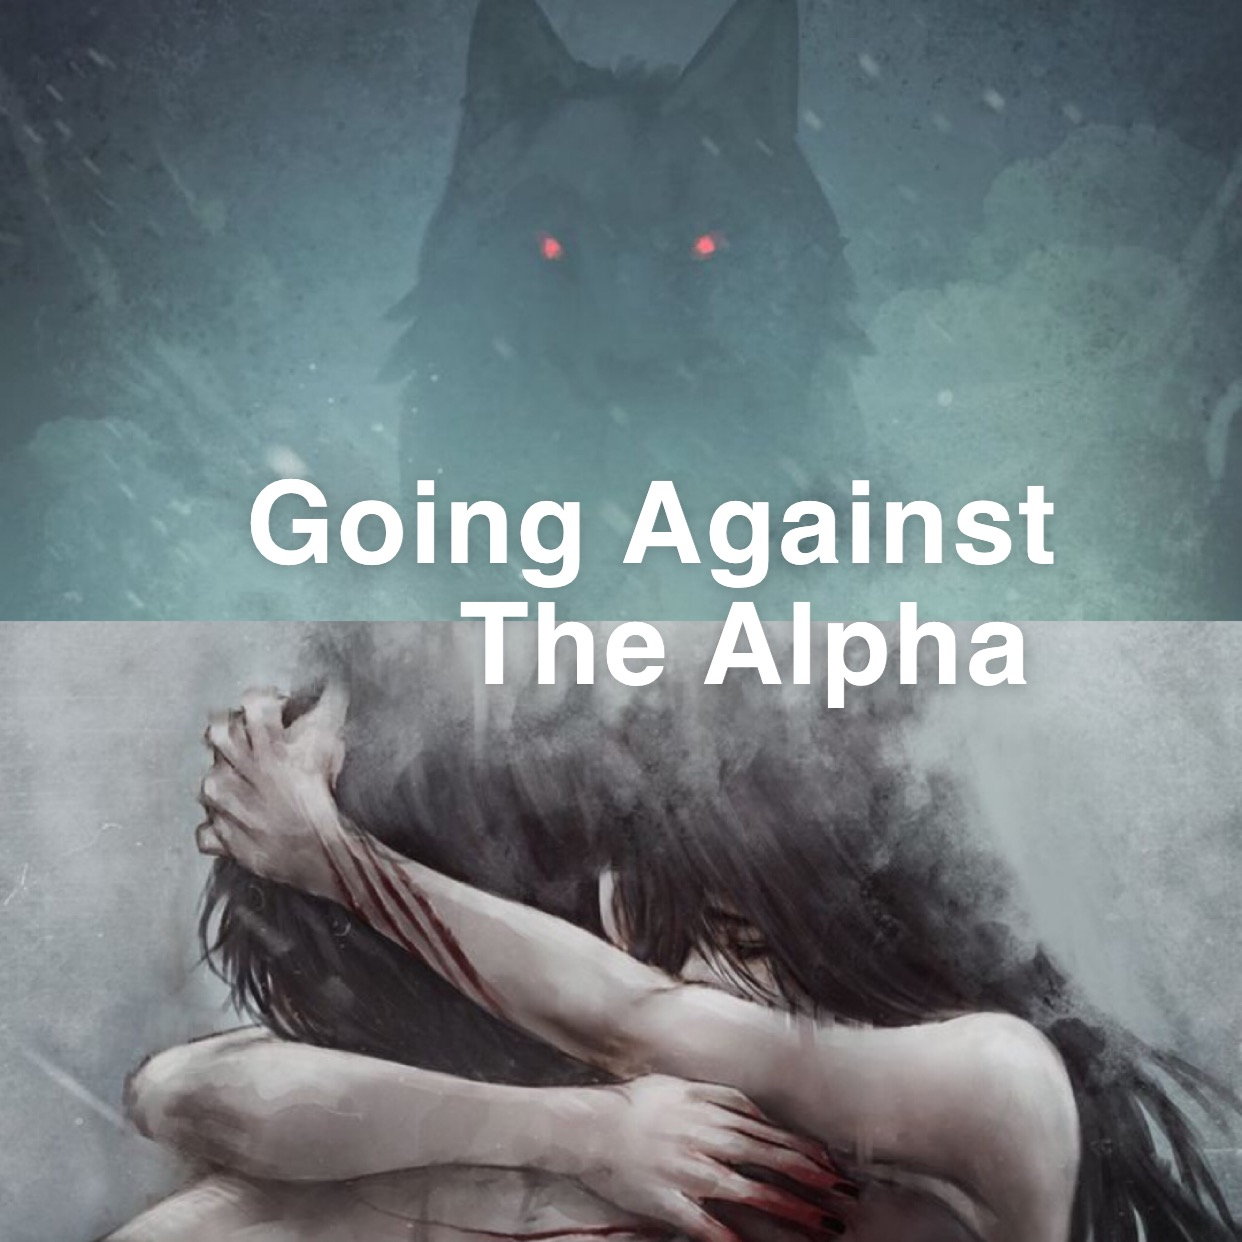 Going Against the Alpha